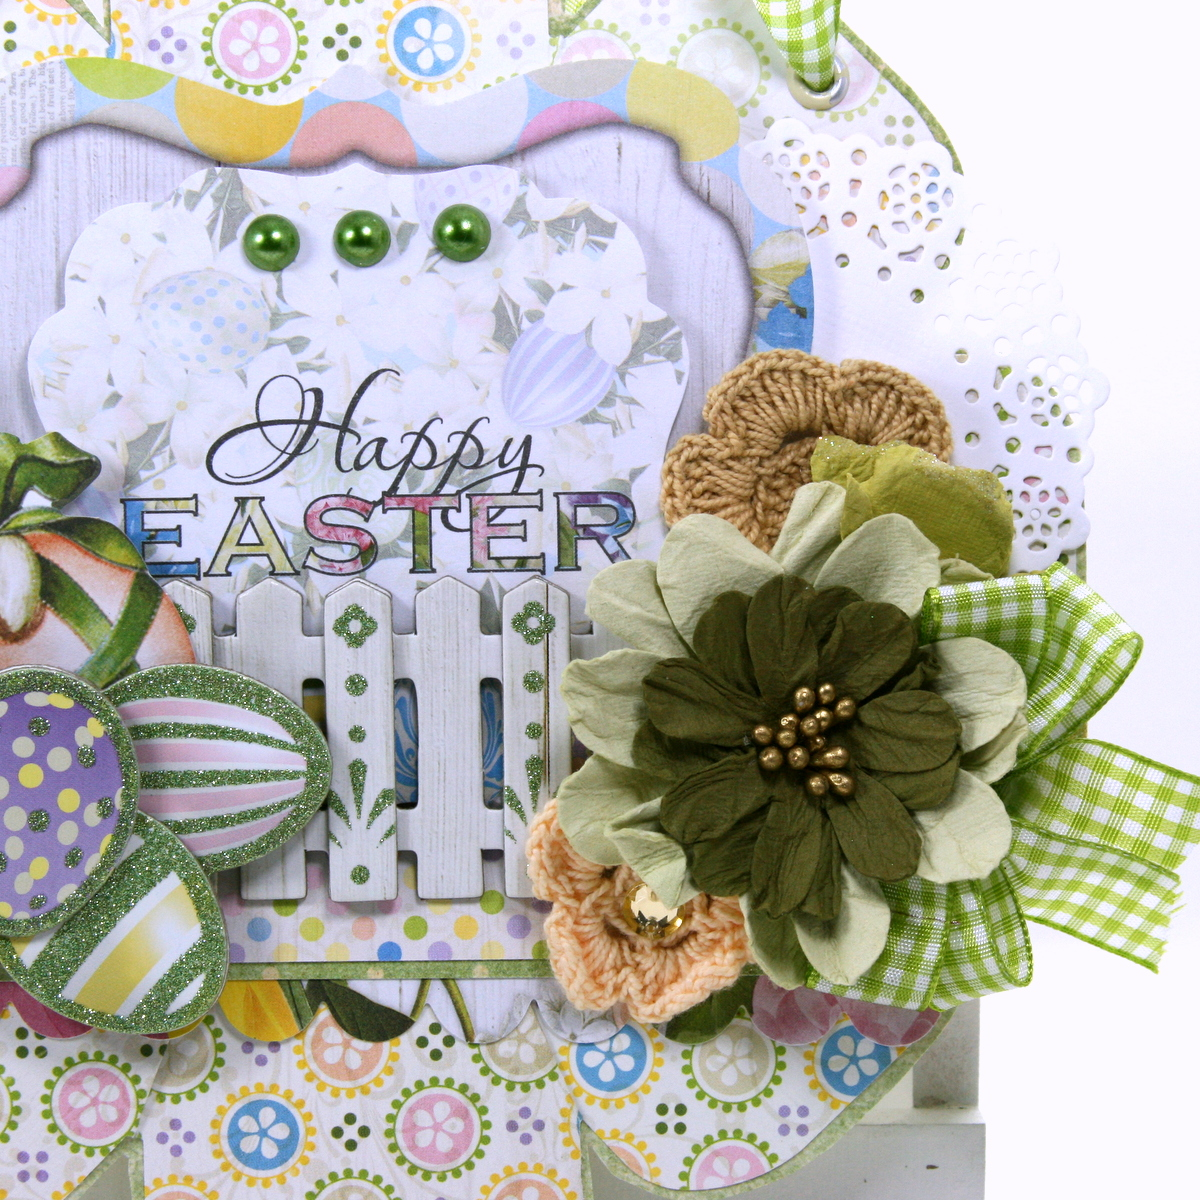 Happy Easter Wall Hanging By Ginny Nemchak For BoBunny Using The Cottontail Collection And WeRMemory Keepers